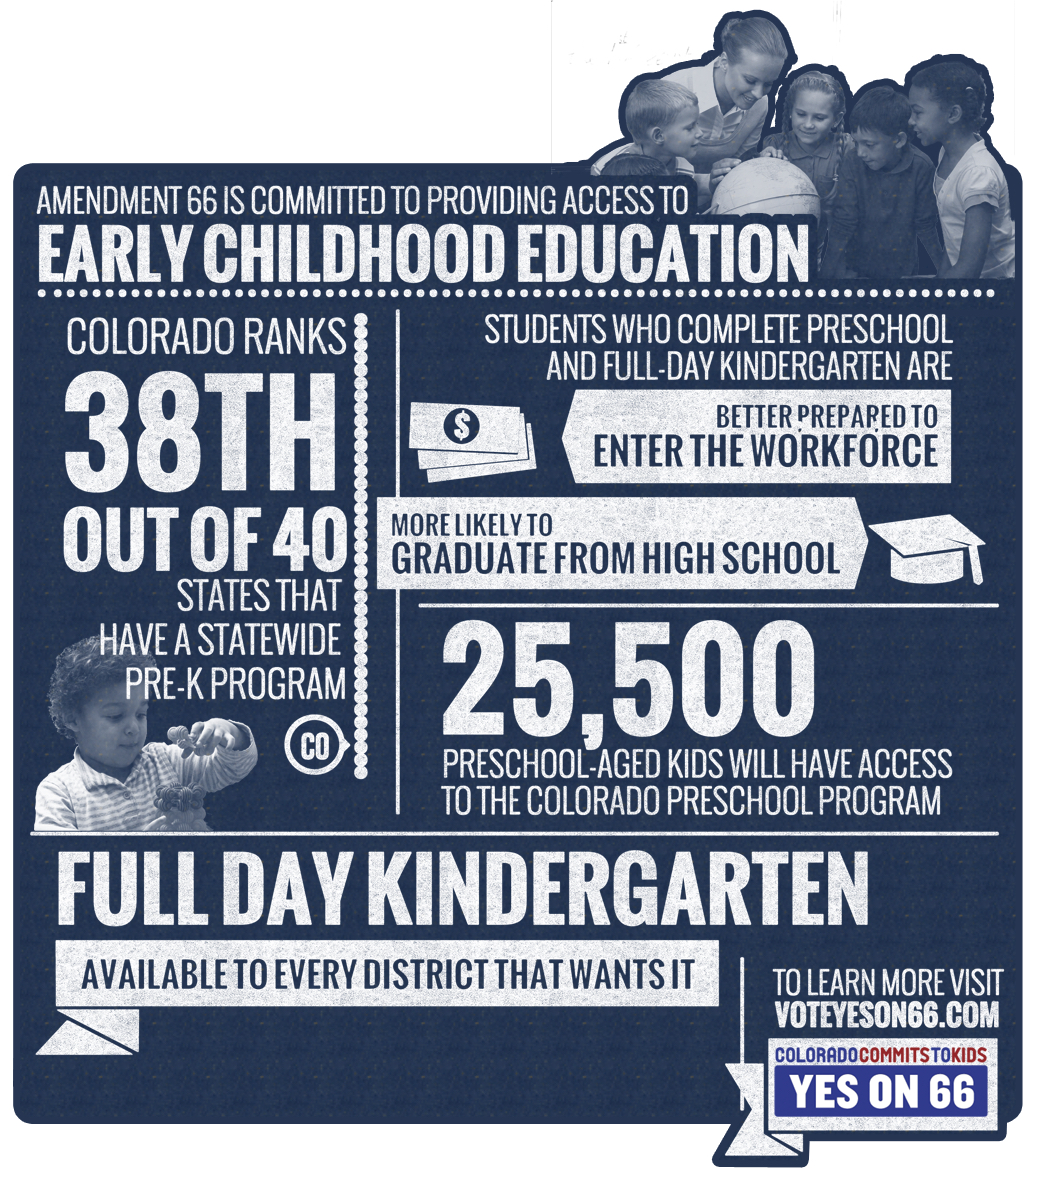 """Amendment 66 """"Early Childhood Education"""" infographic"""